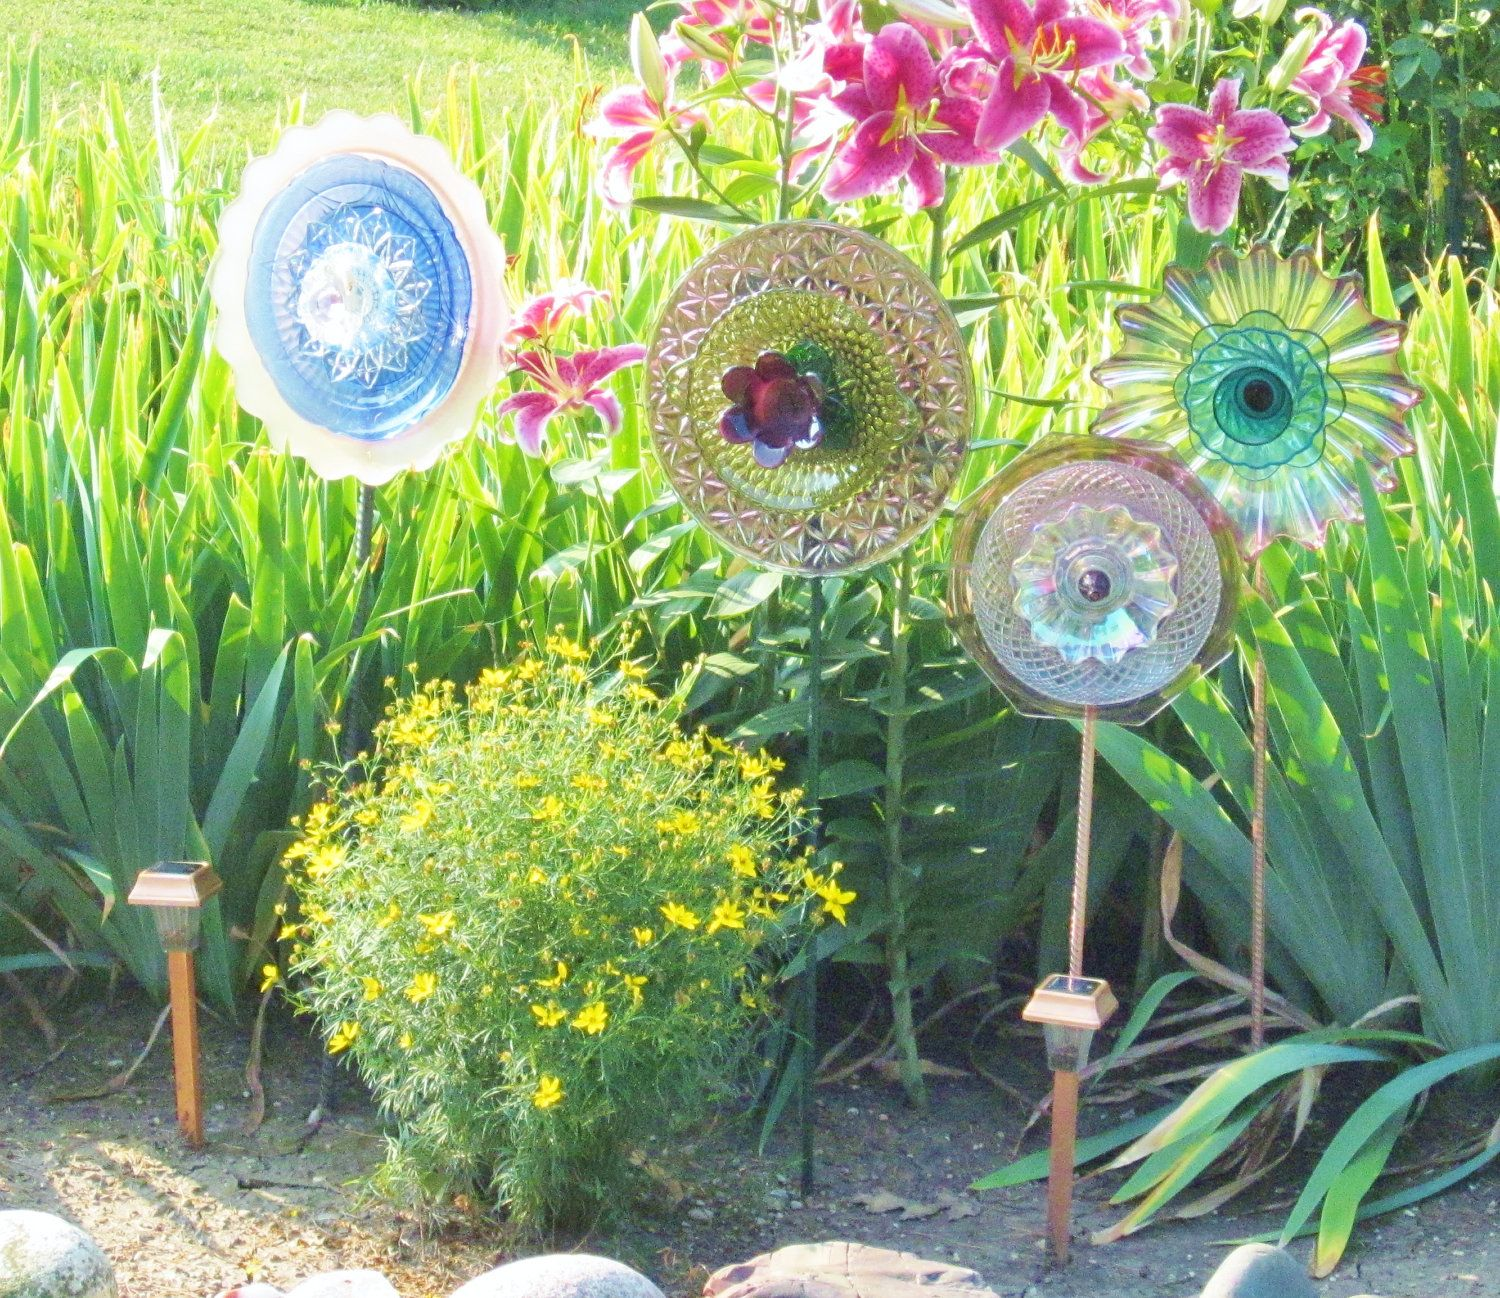 Aqua Blue Garden Art Glass Egg Plate Flower Yard Art Outdoor